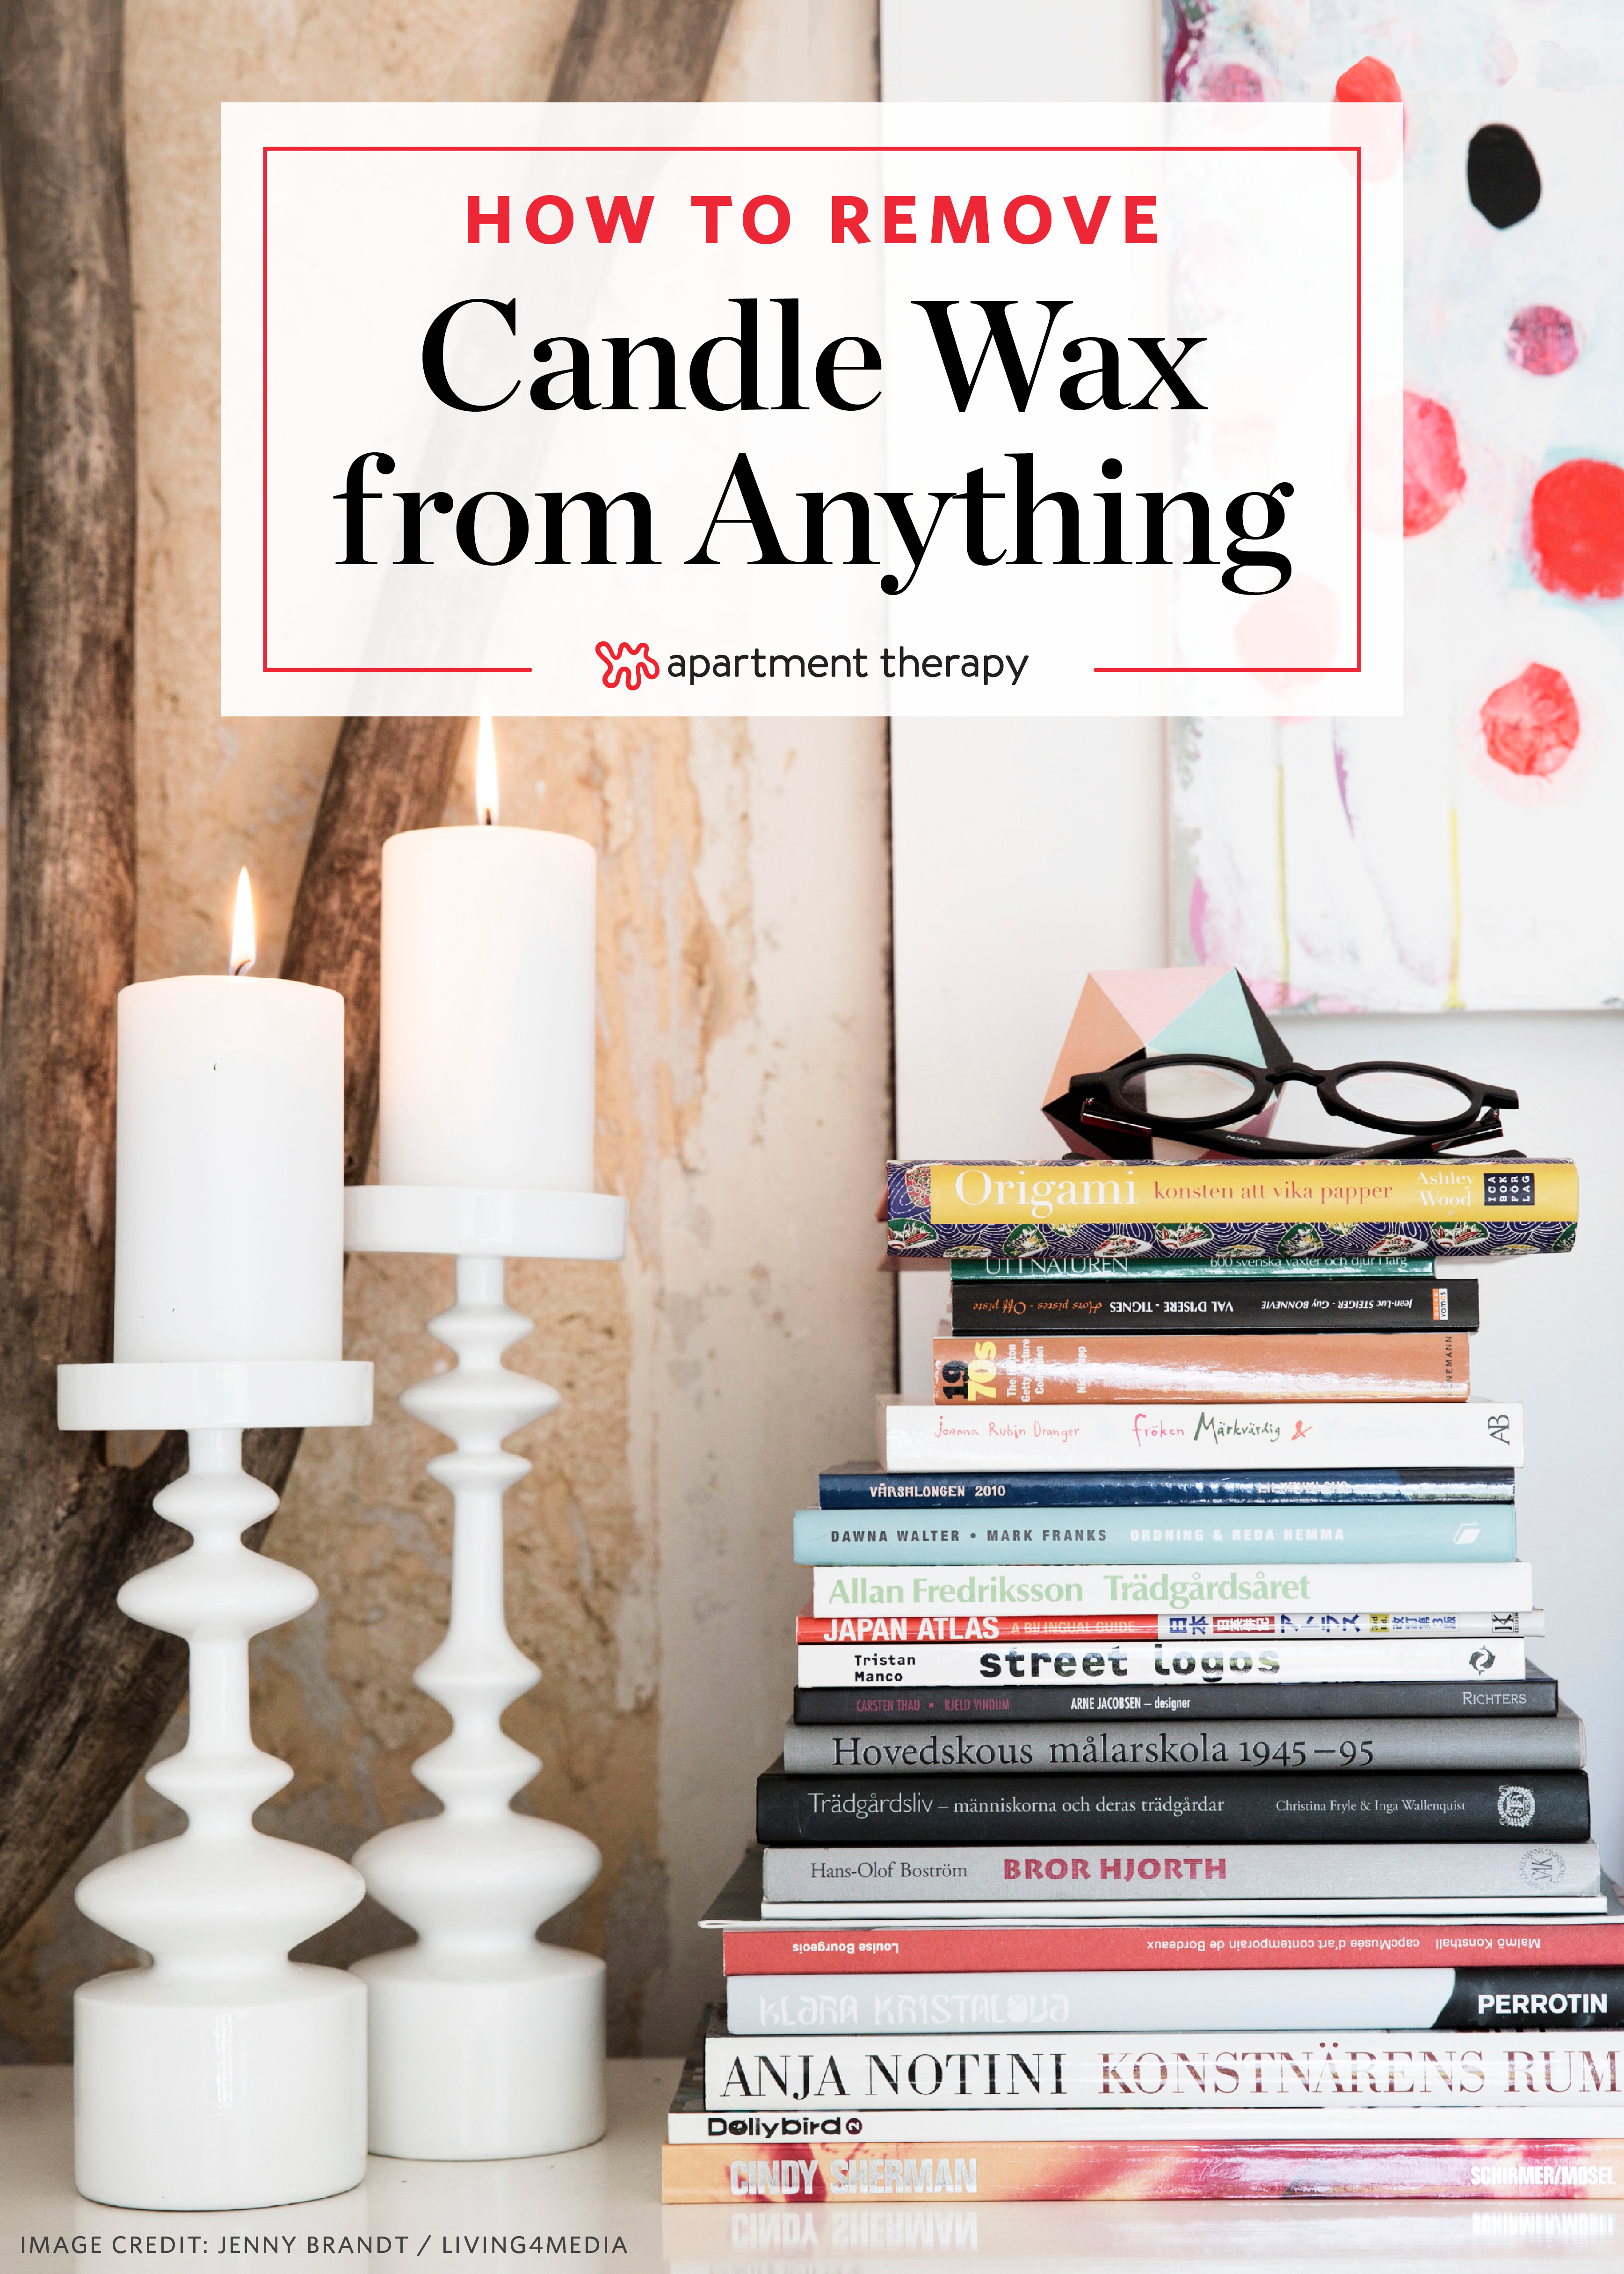 How To: Remove Candle Wax from Just About Anything